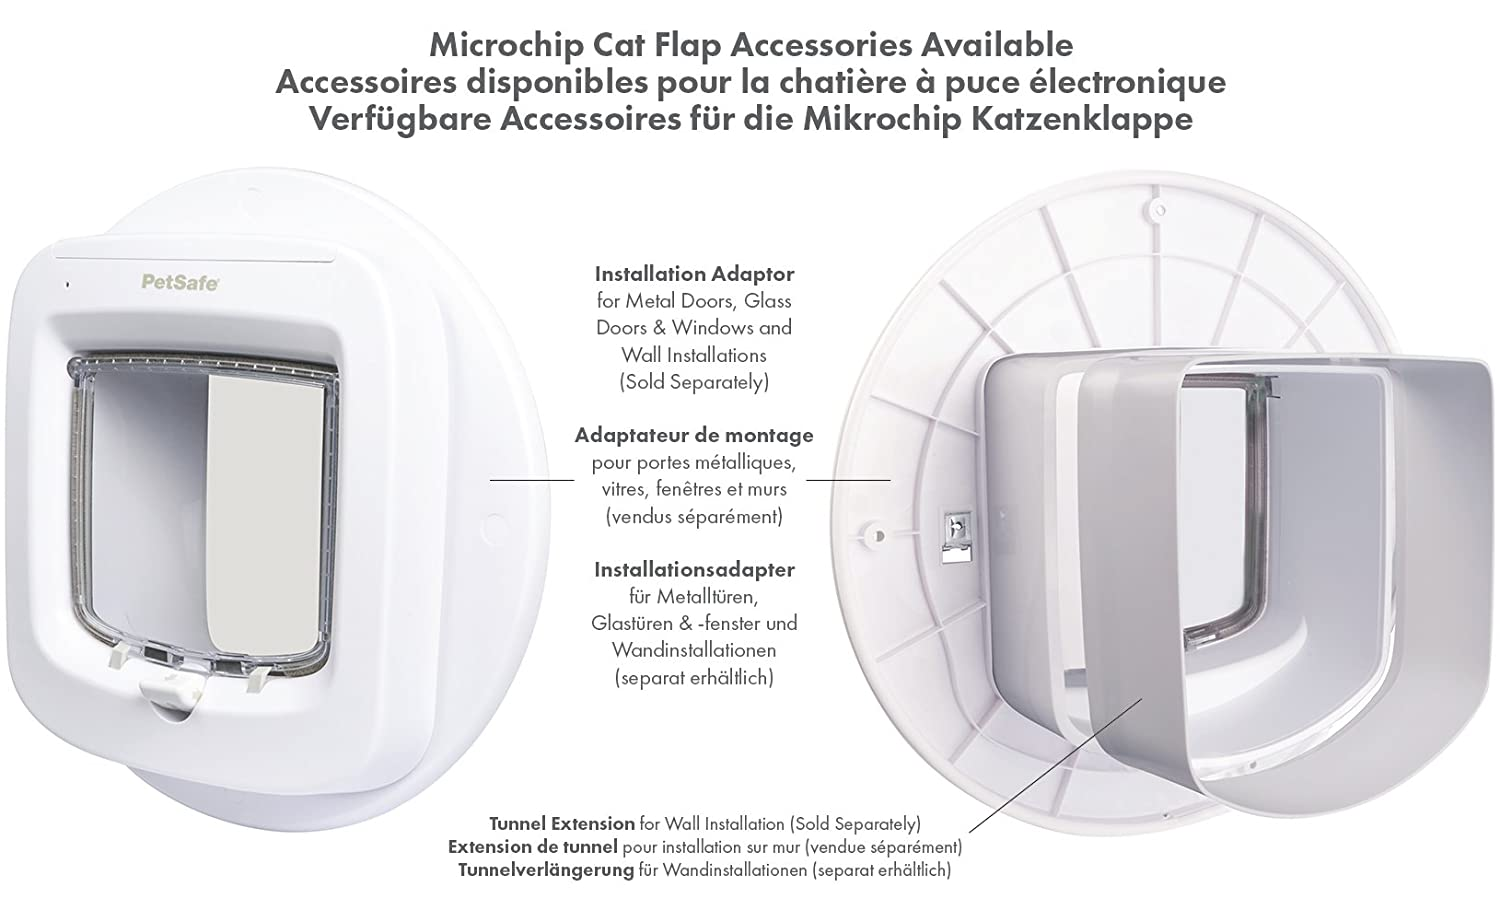 PetSafe Microchip Cat Flap Installation Adaptor, Easy Install, Glass Door  And Walls: Amazon.co.uk: Pet Supplies